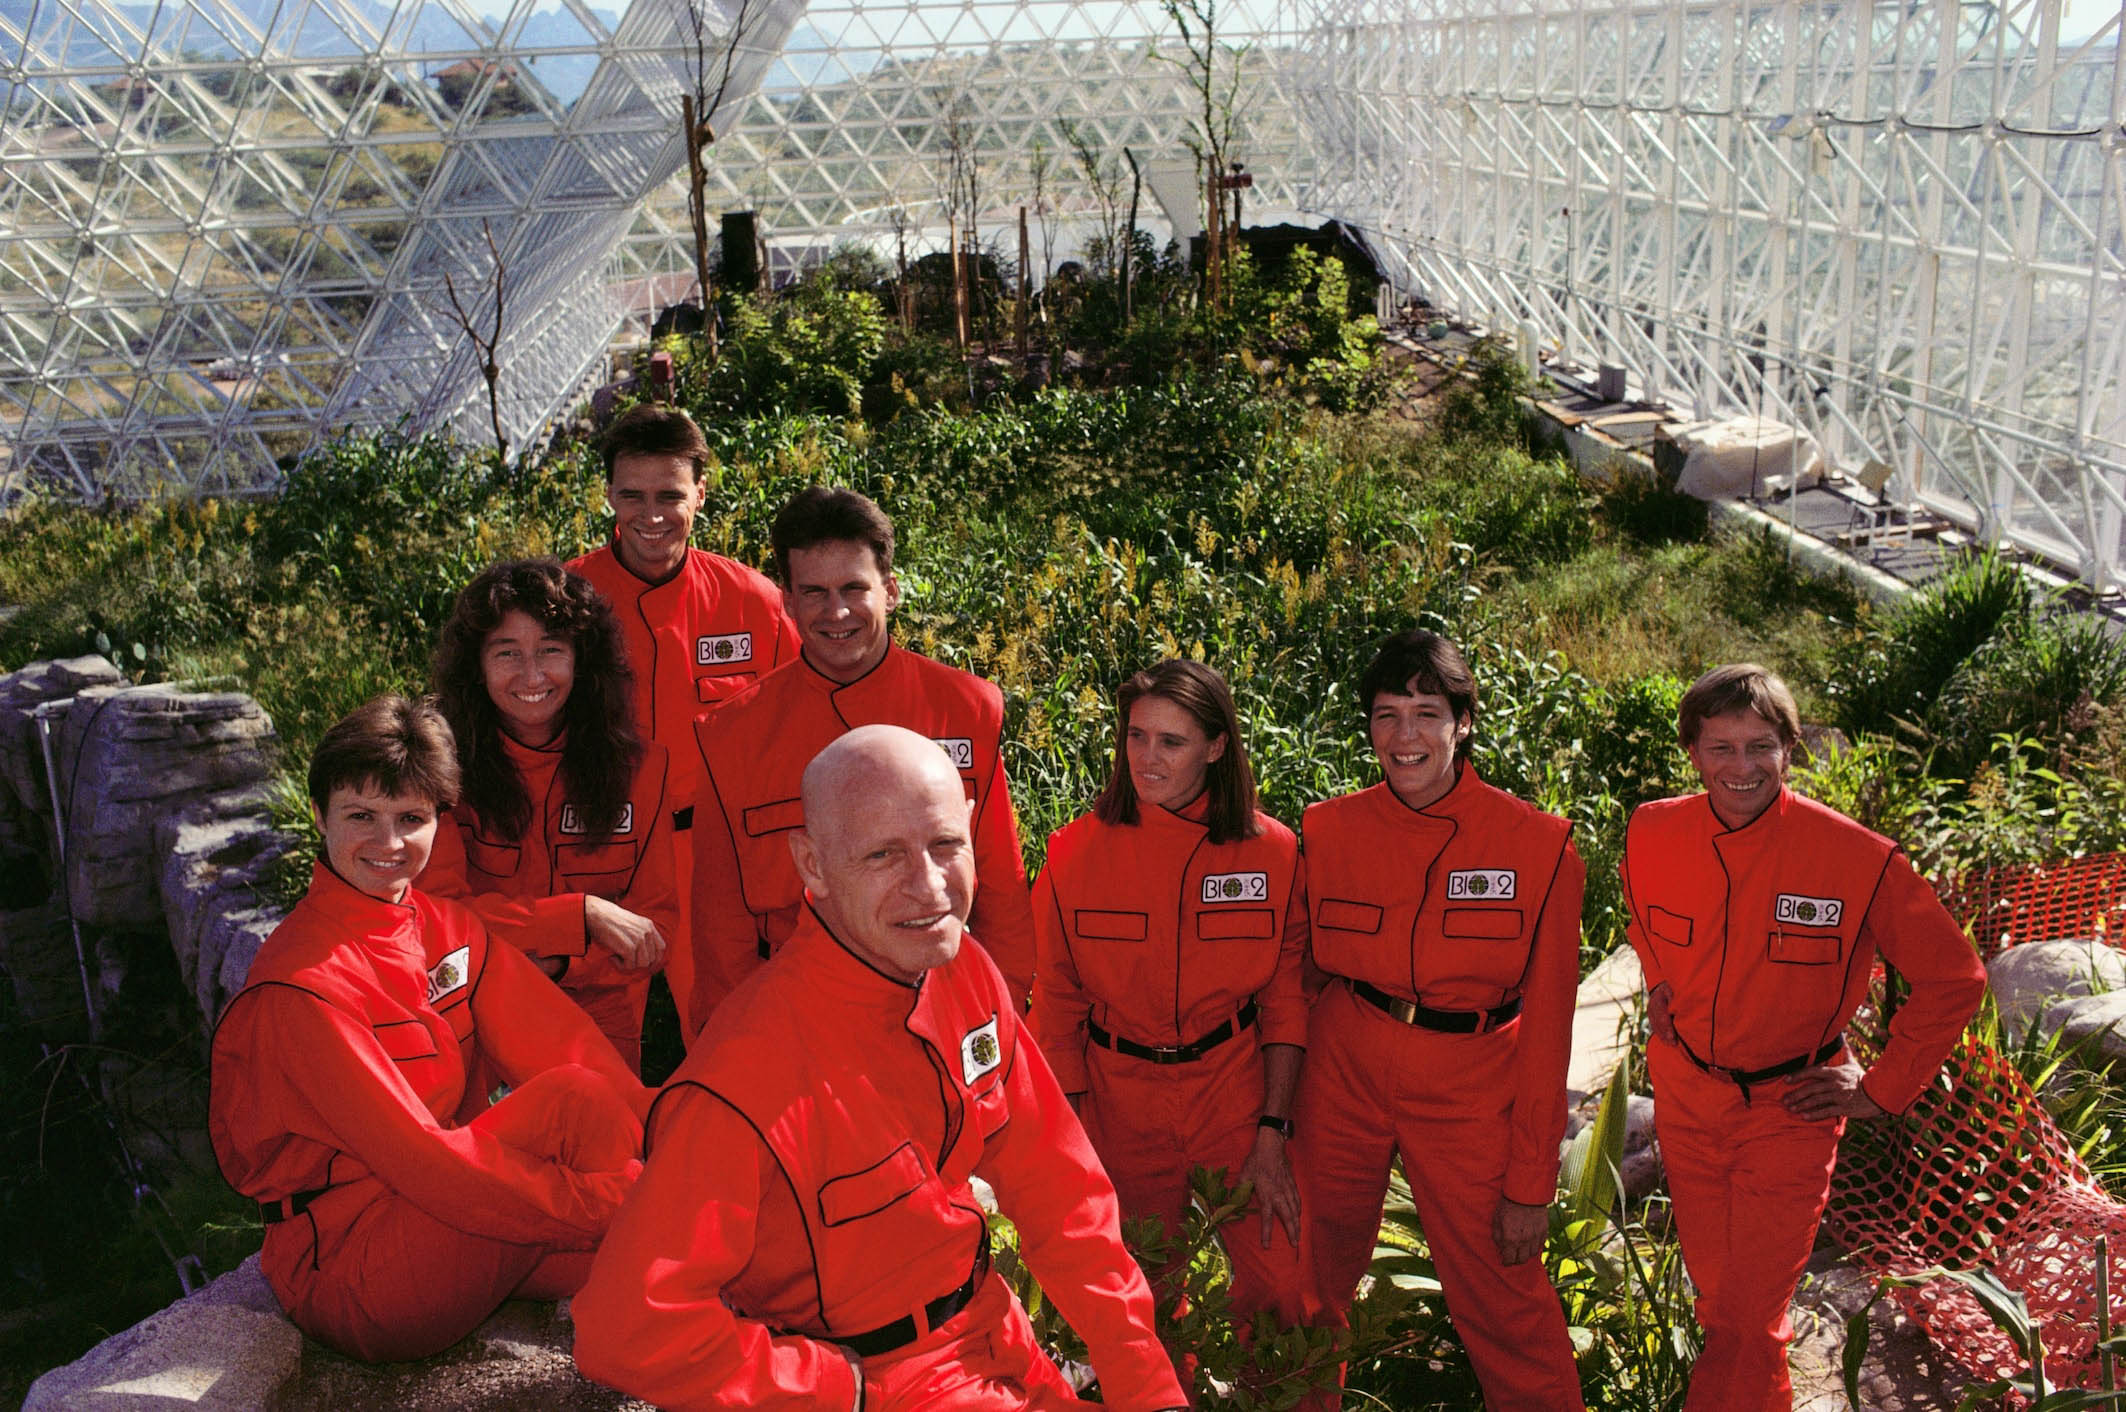 Spaceship Earth uncovers the goodness hidden in the debacle of Biosphere 2